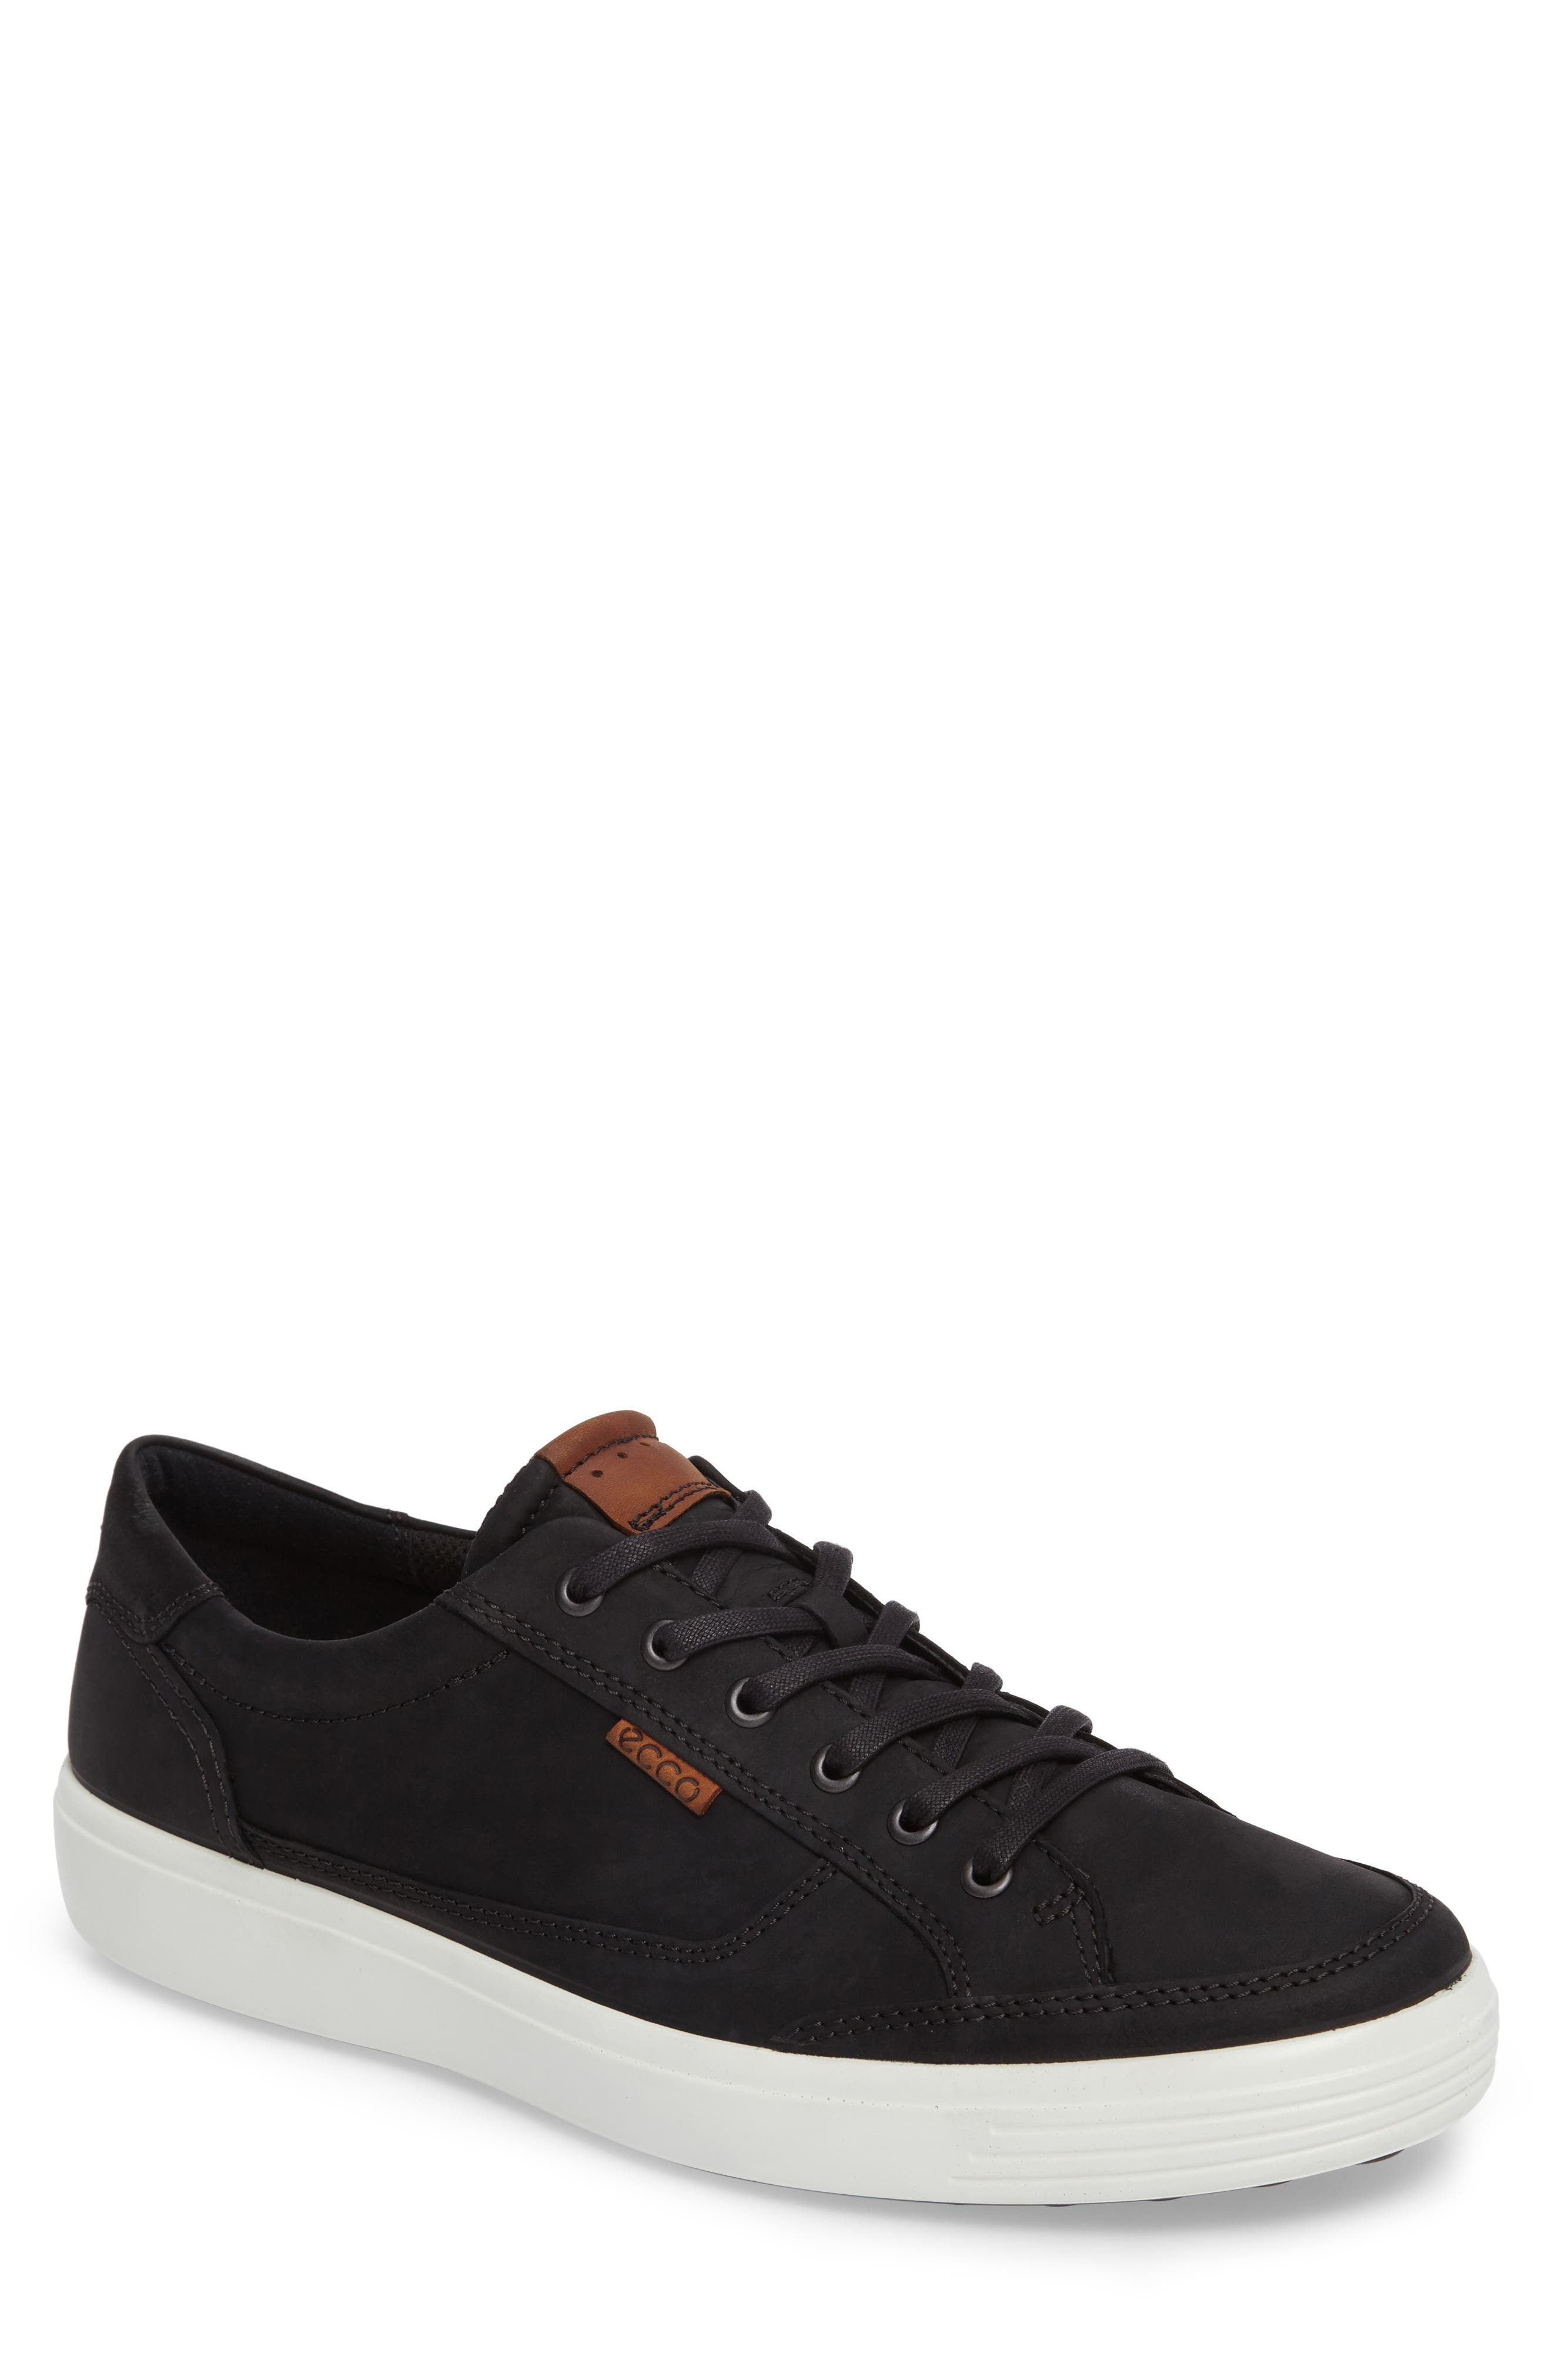 ECCO, Soft 7 Long Lace Sneaker, Main thumbnail 1, color, BLACK LEATHER